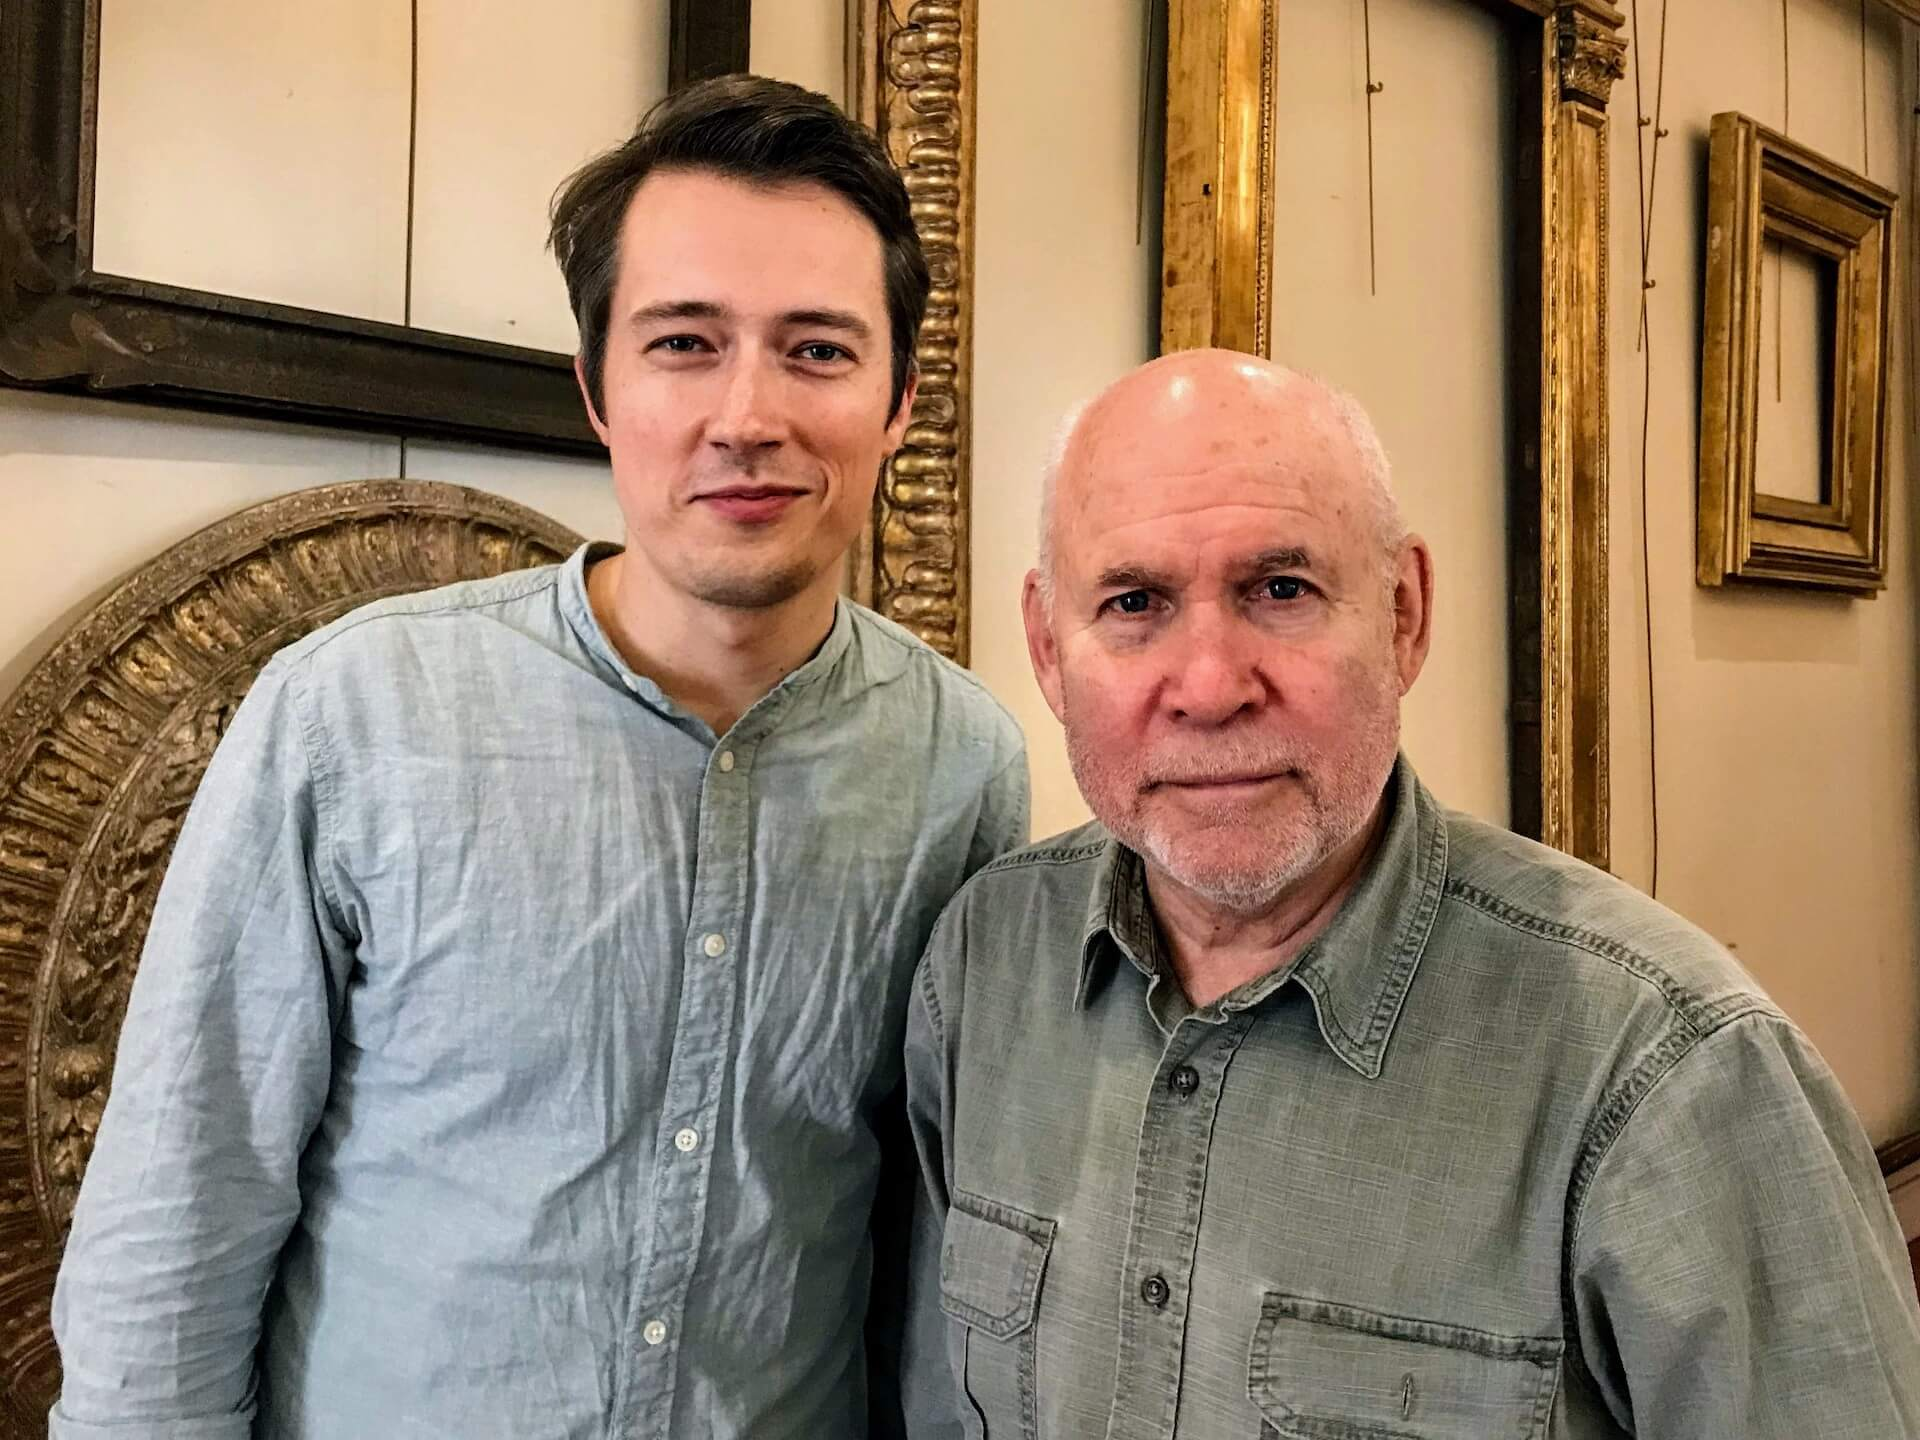 Steve McCurry & Erik Lorenz